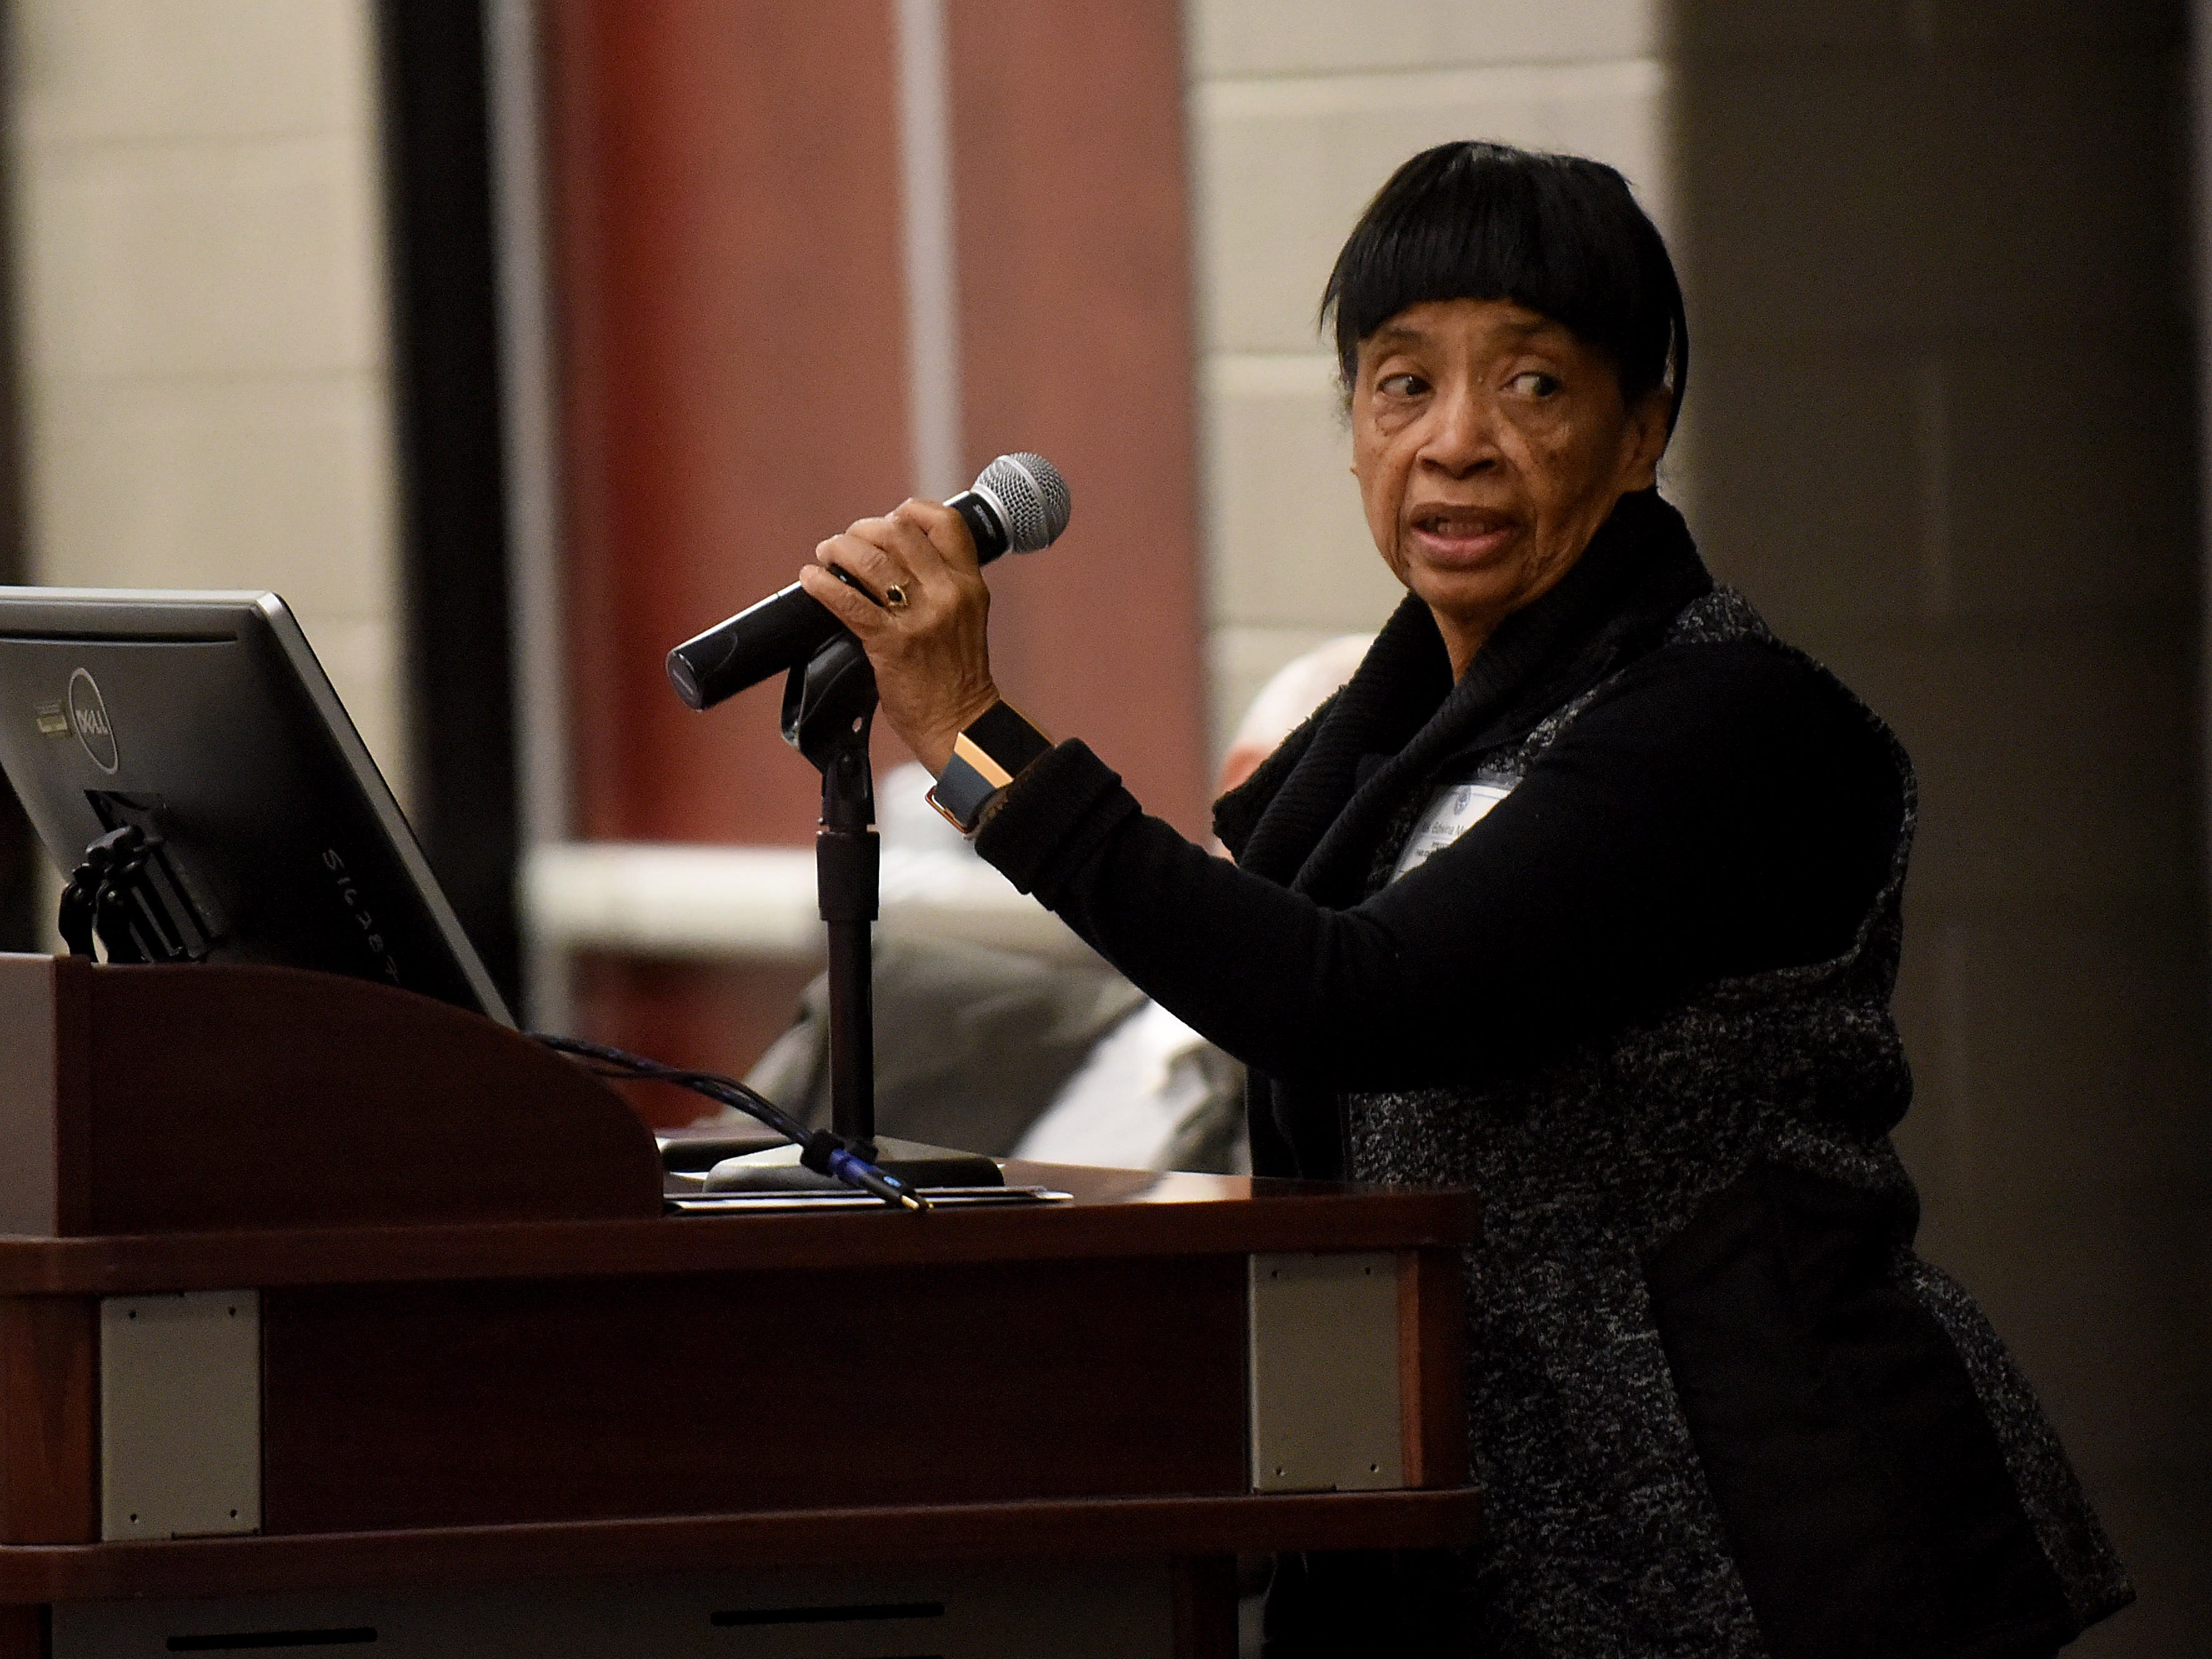 Par Excellence Academy board president Edwina McIntyre introduces the recipient of the Helping Hand Award, Kim Lust, during the school's annual Martin Luther King Jr. Day breakfast at the John Gilbert Reese Center on the campus of OSU Newark.